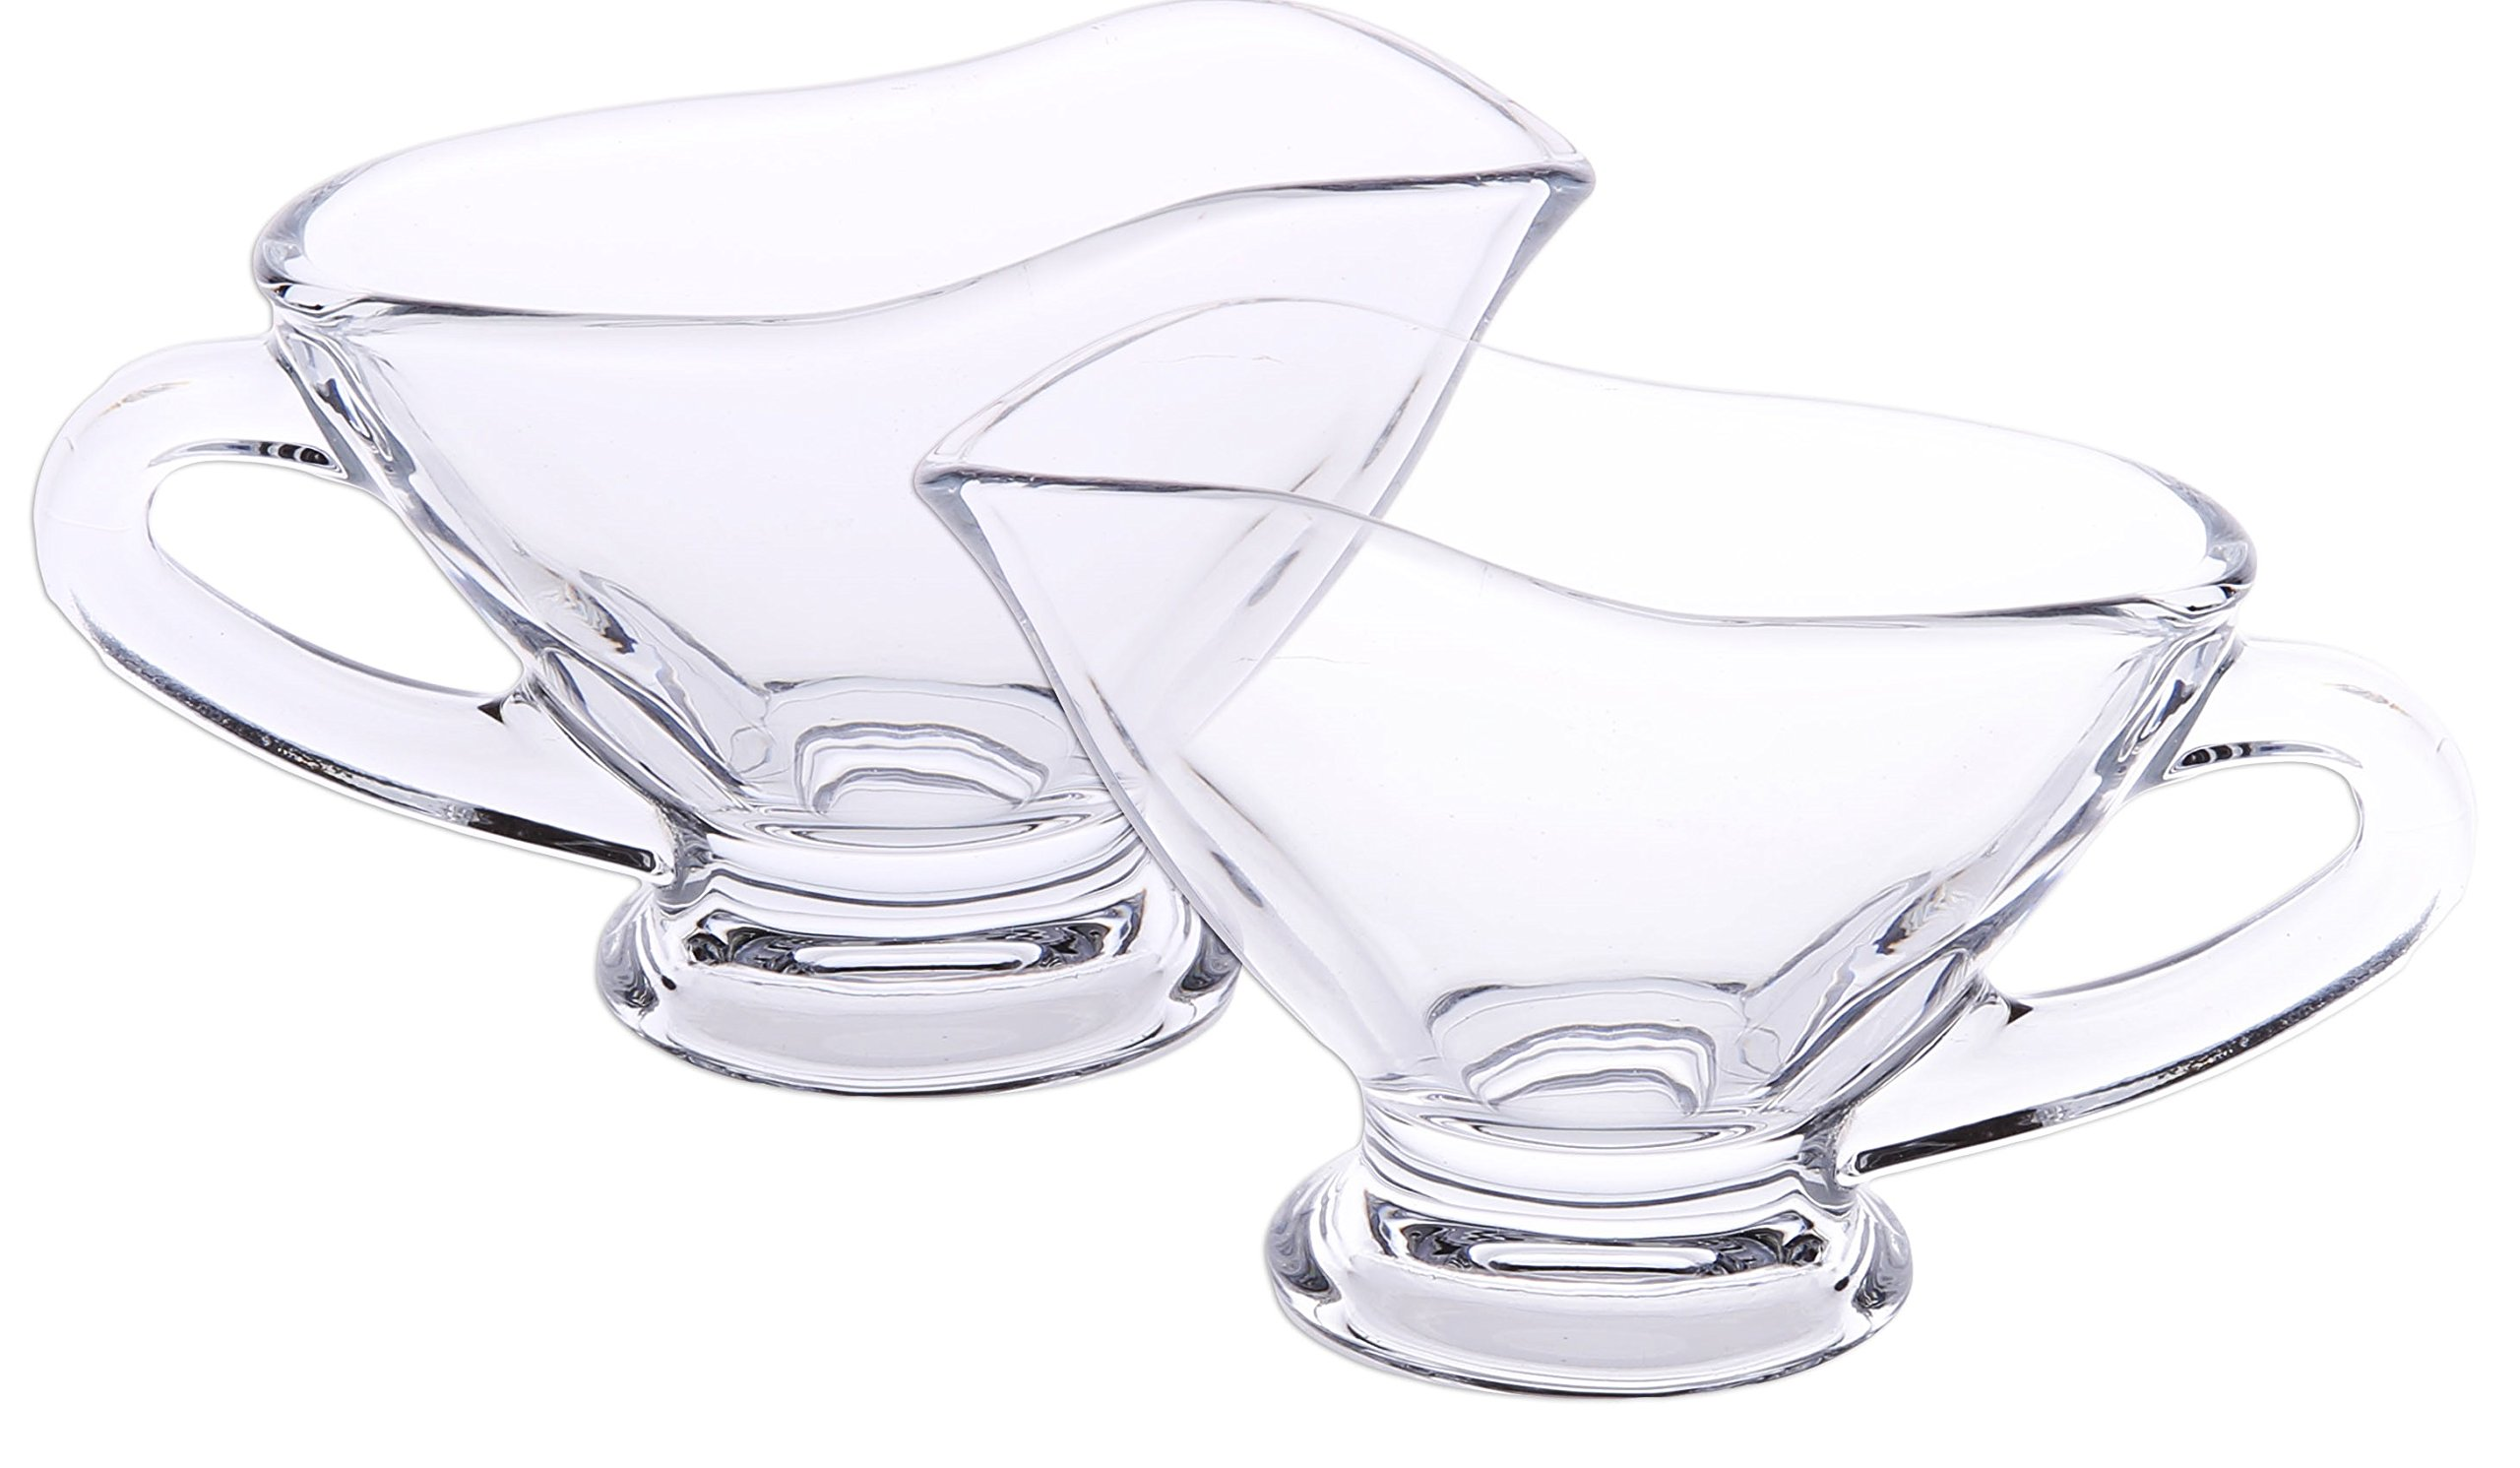 Small 3 oz crystal Coupe Shaped Gravy Sauce Boat Salt and Pepper Chinese Spoon Set of 2